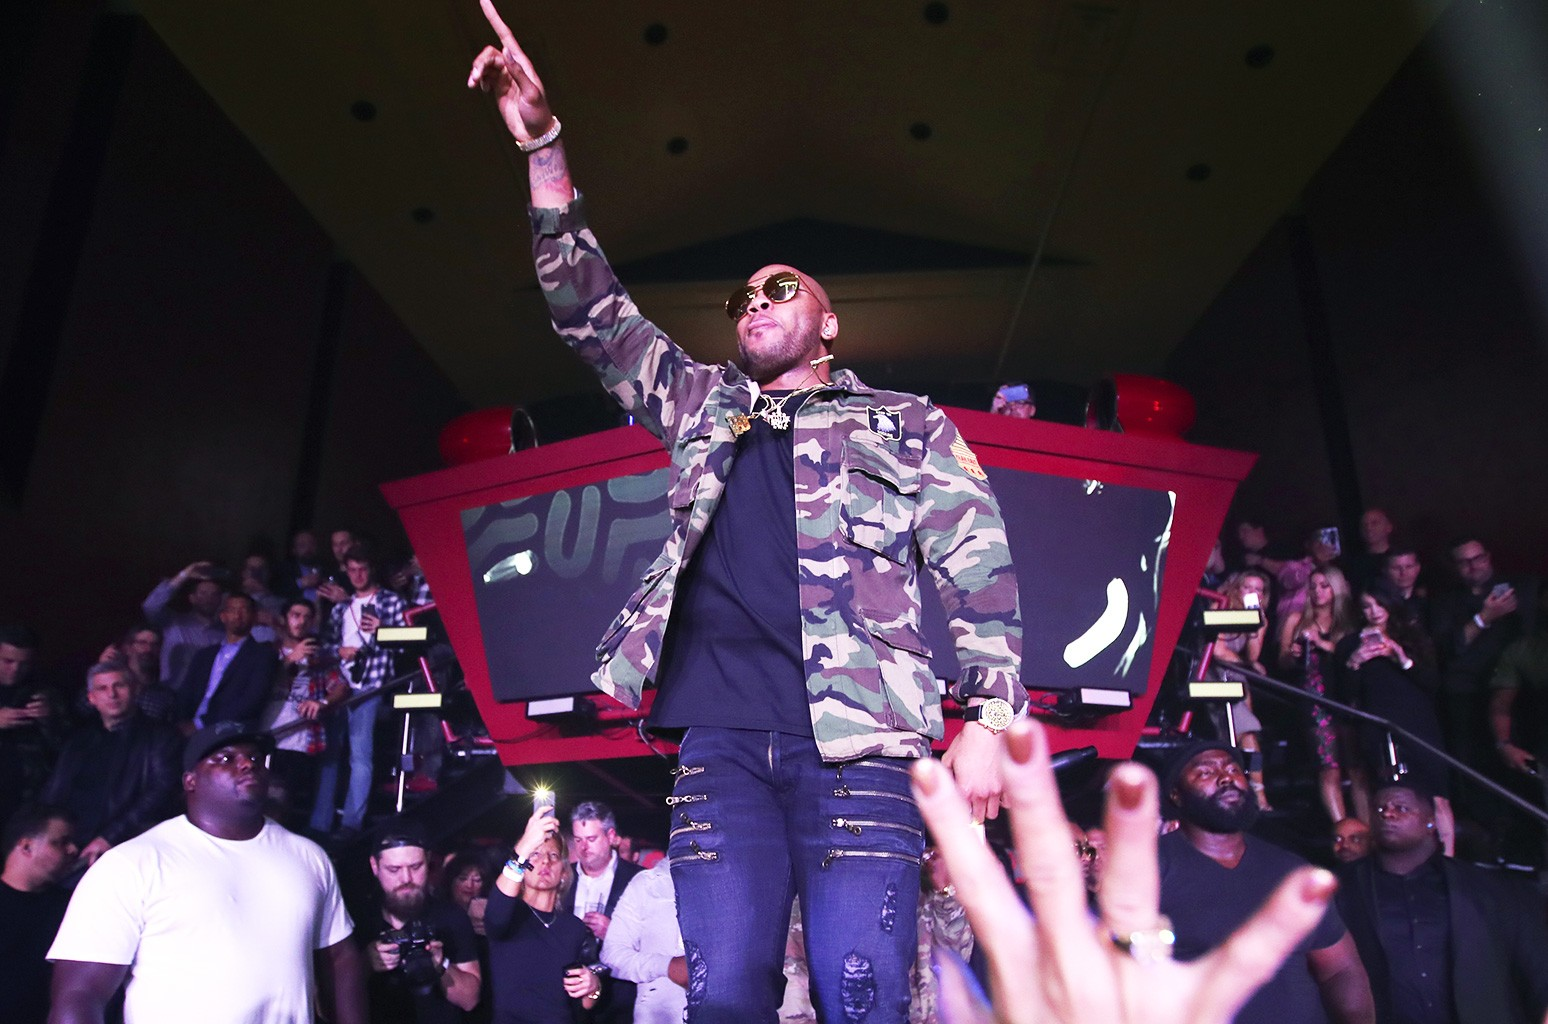 Flo Rida performs onstage during the Playboy party with TAO at Spire Nightclub on Feb. 4, 2017.